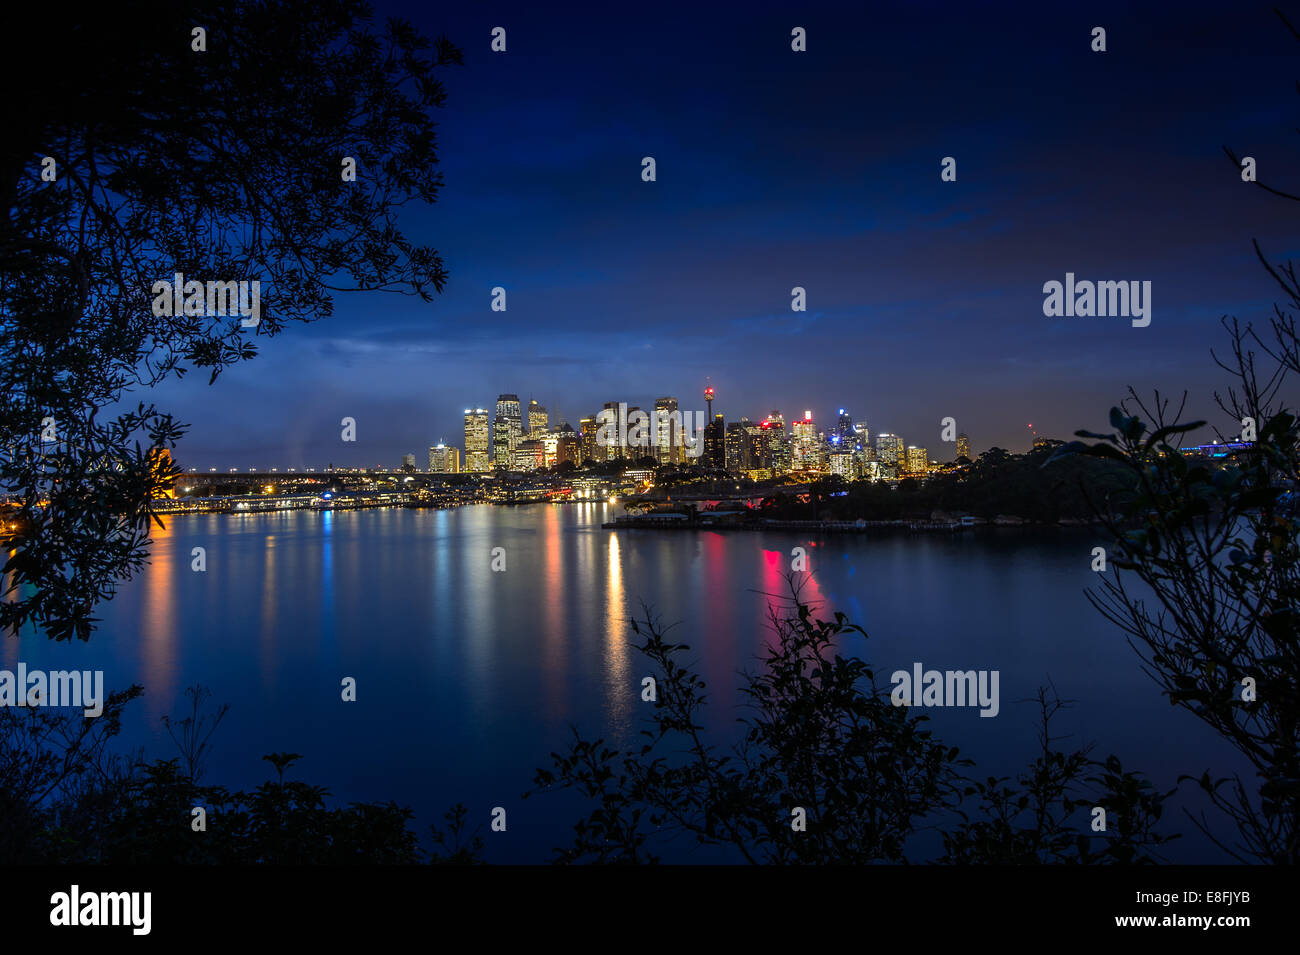 Australia, New South Wales, Sydney, Cityscape at twilight - Stock Image